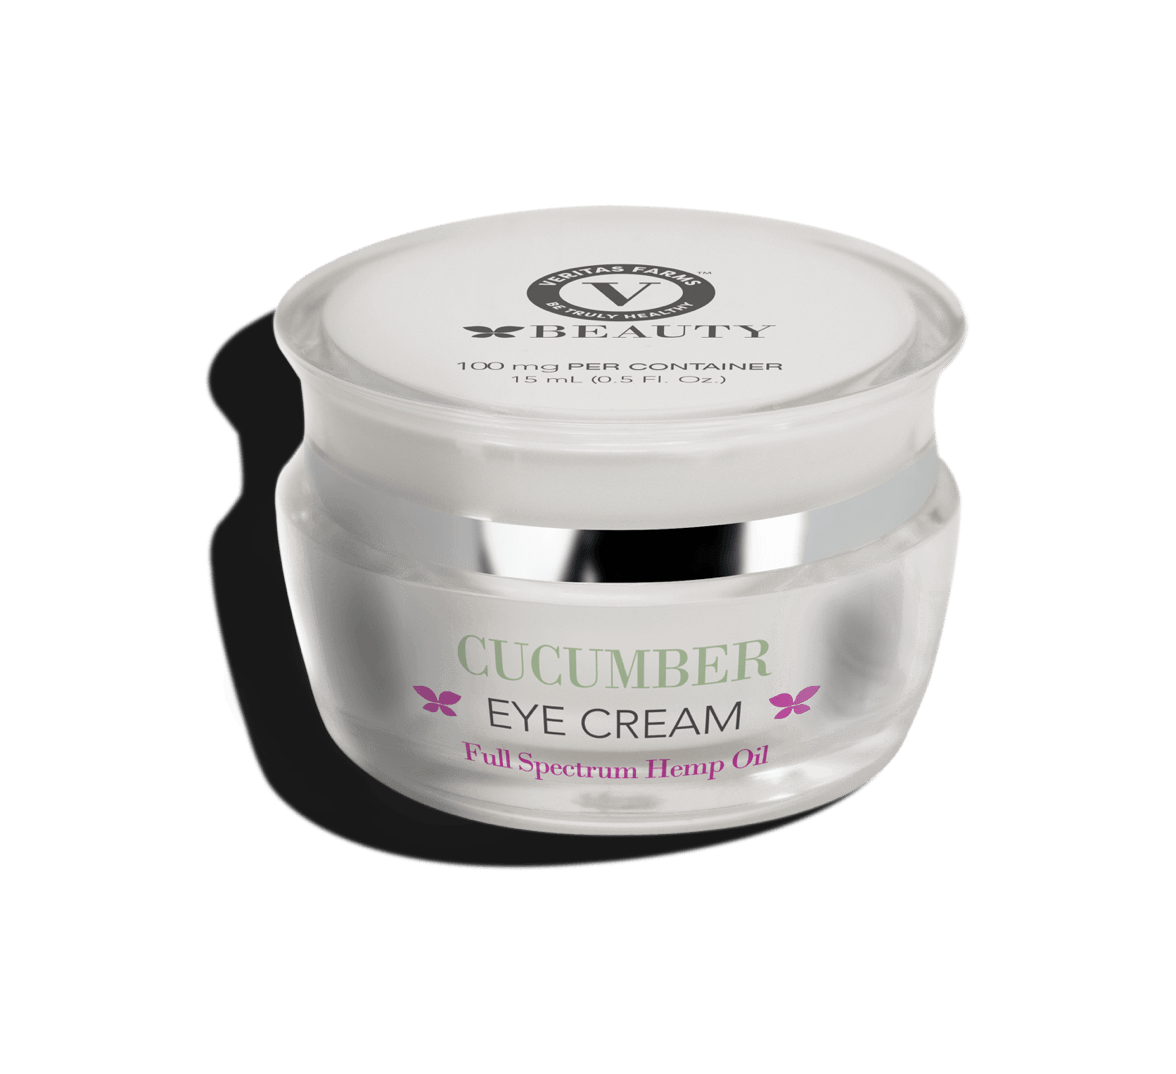 Veritas Farms Cucumber Eye Cream